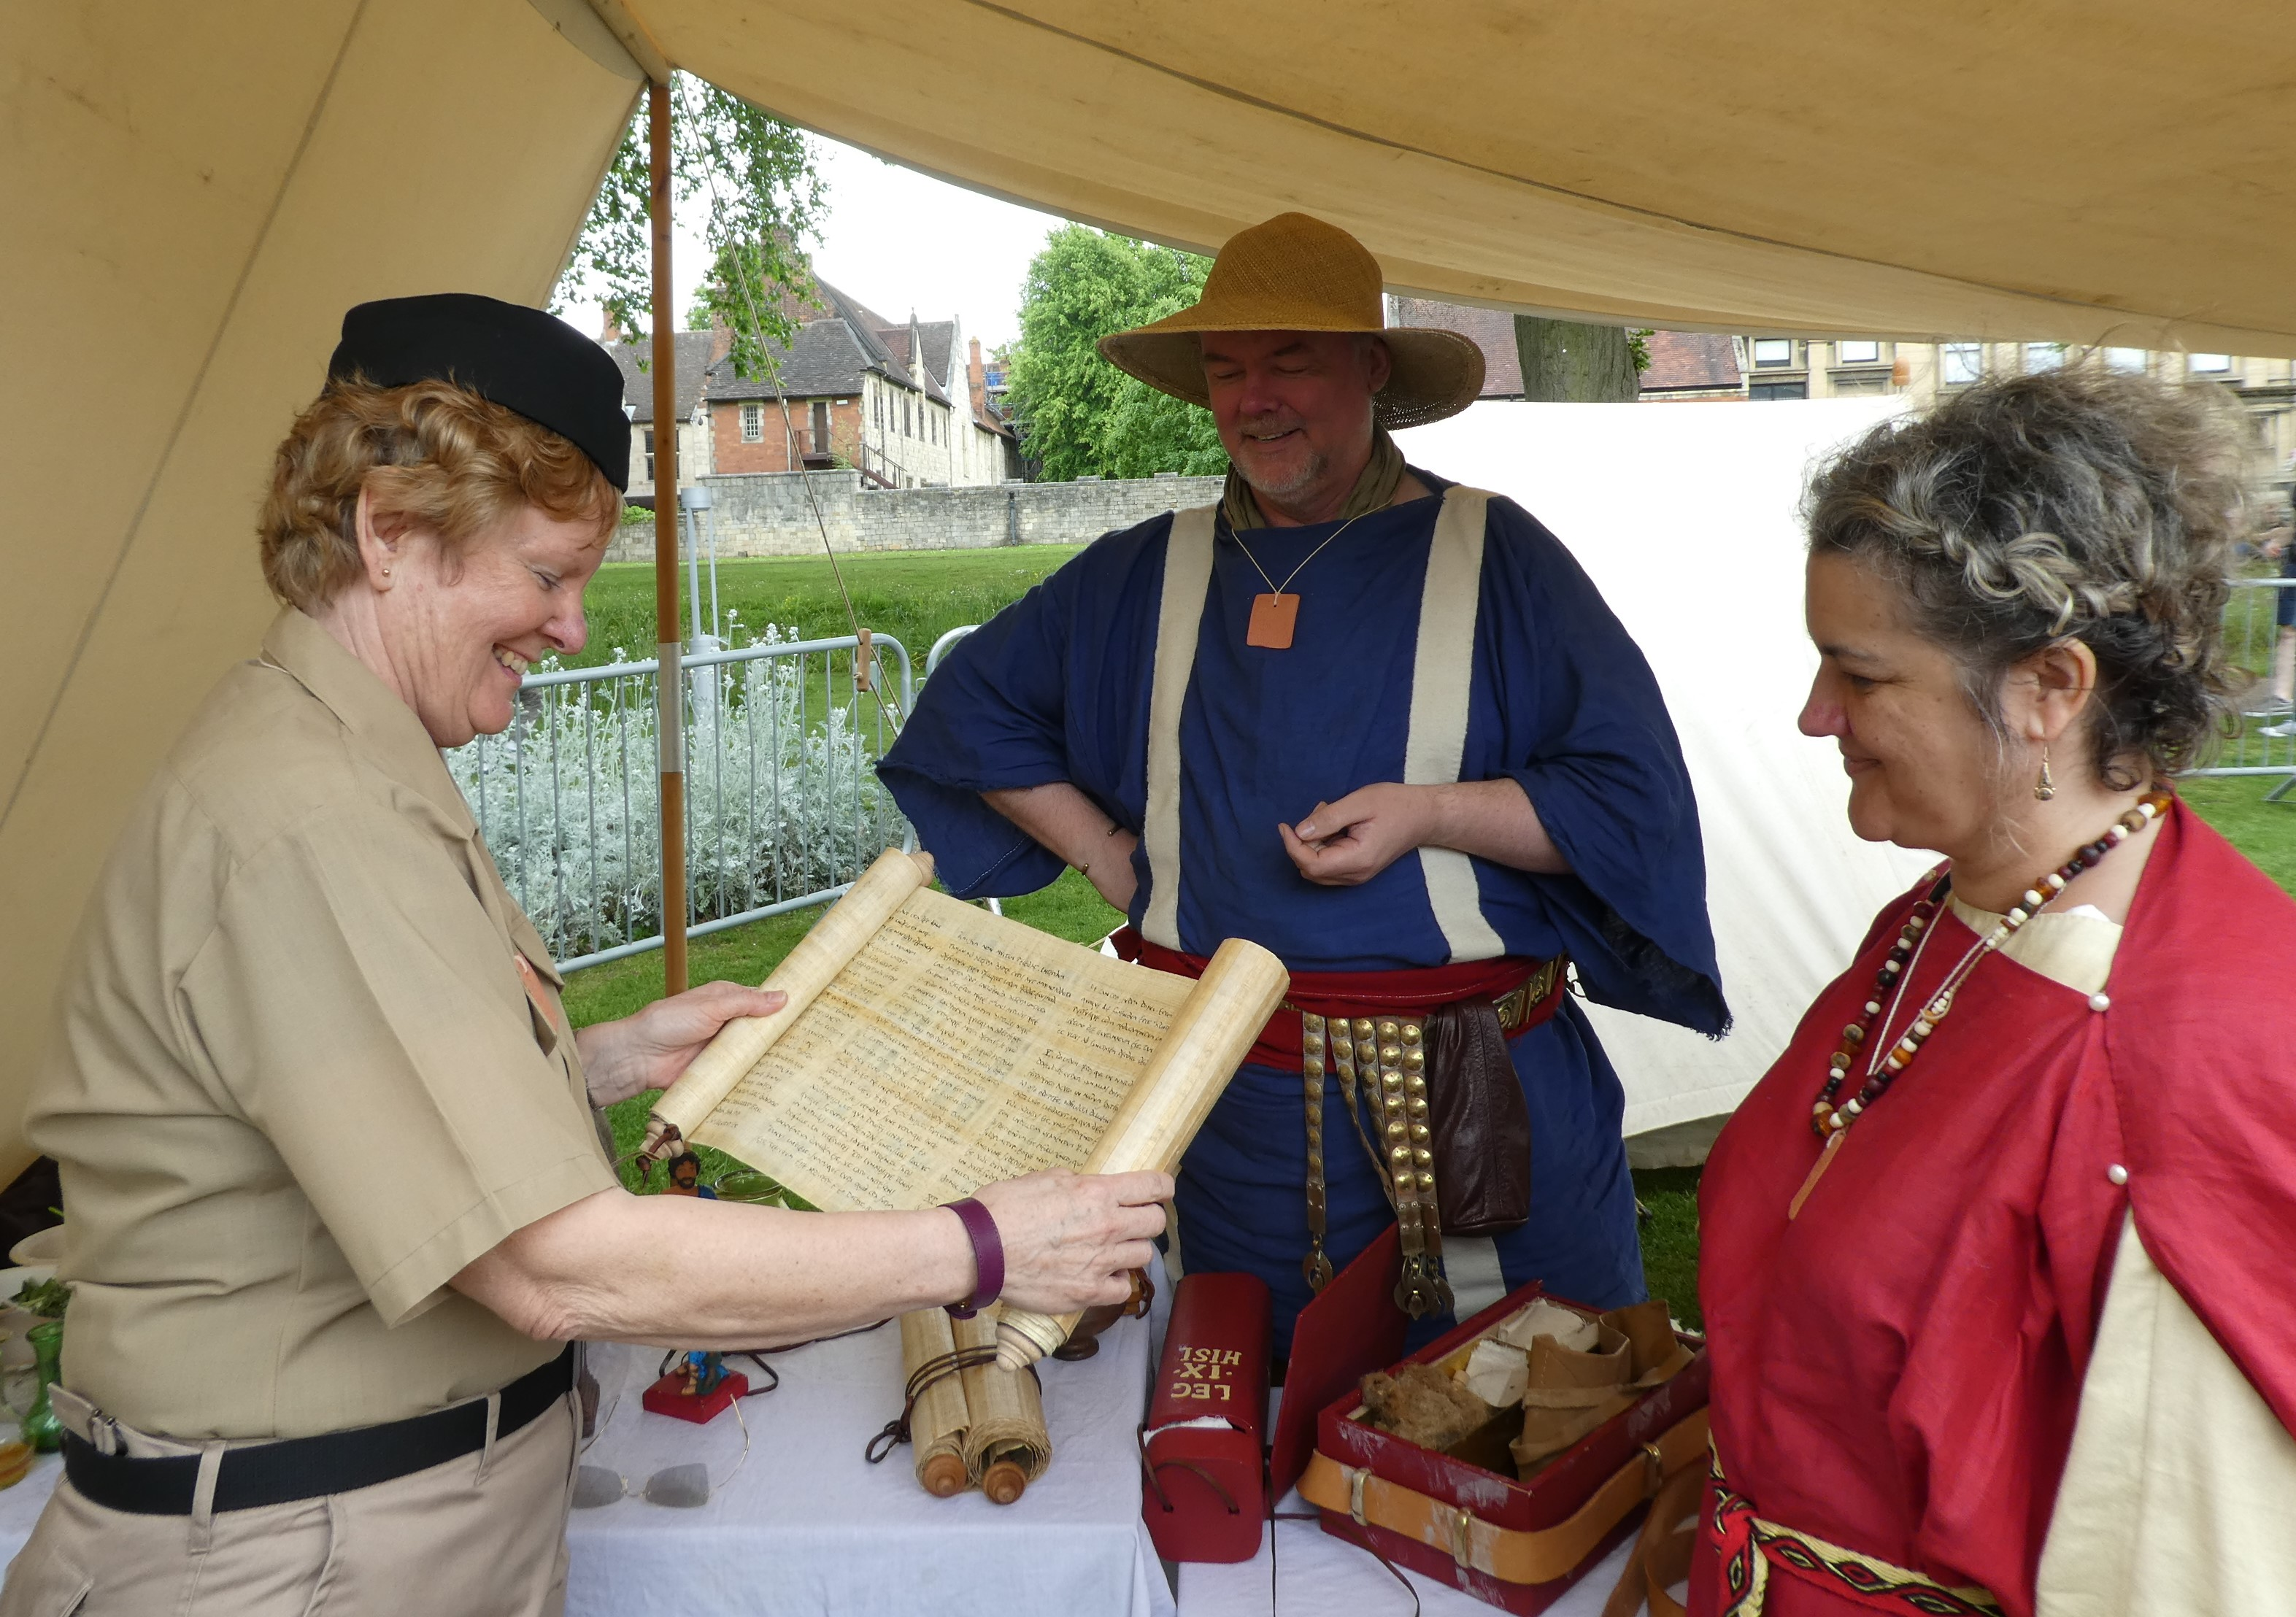 Re-enactor showing a handwritten scroll to two women.